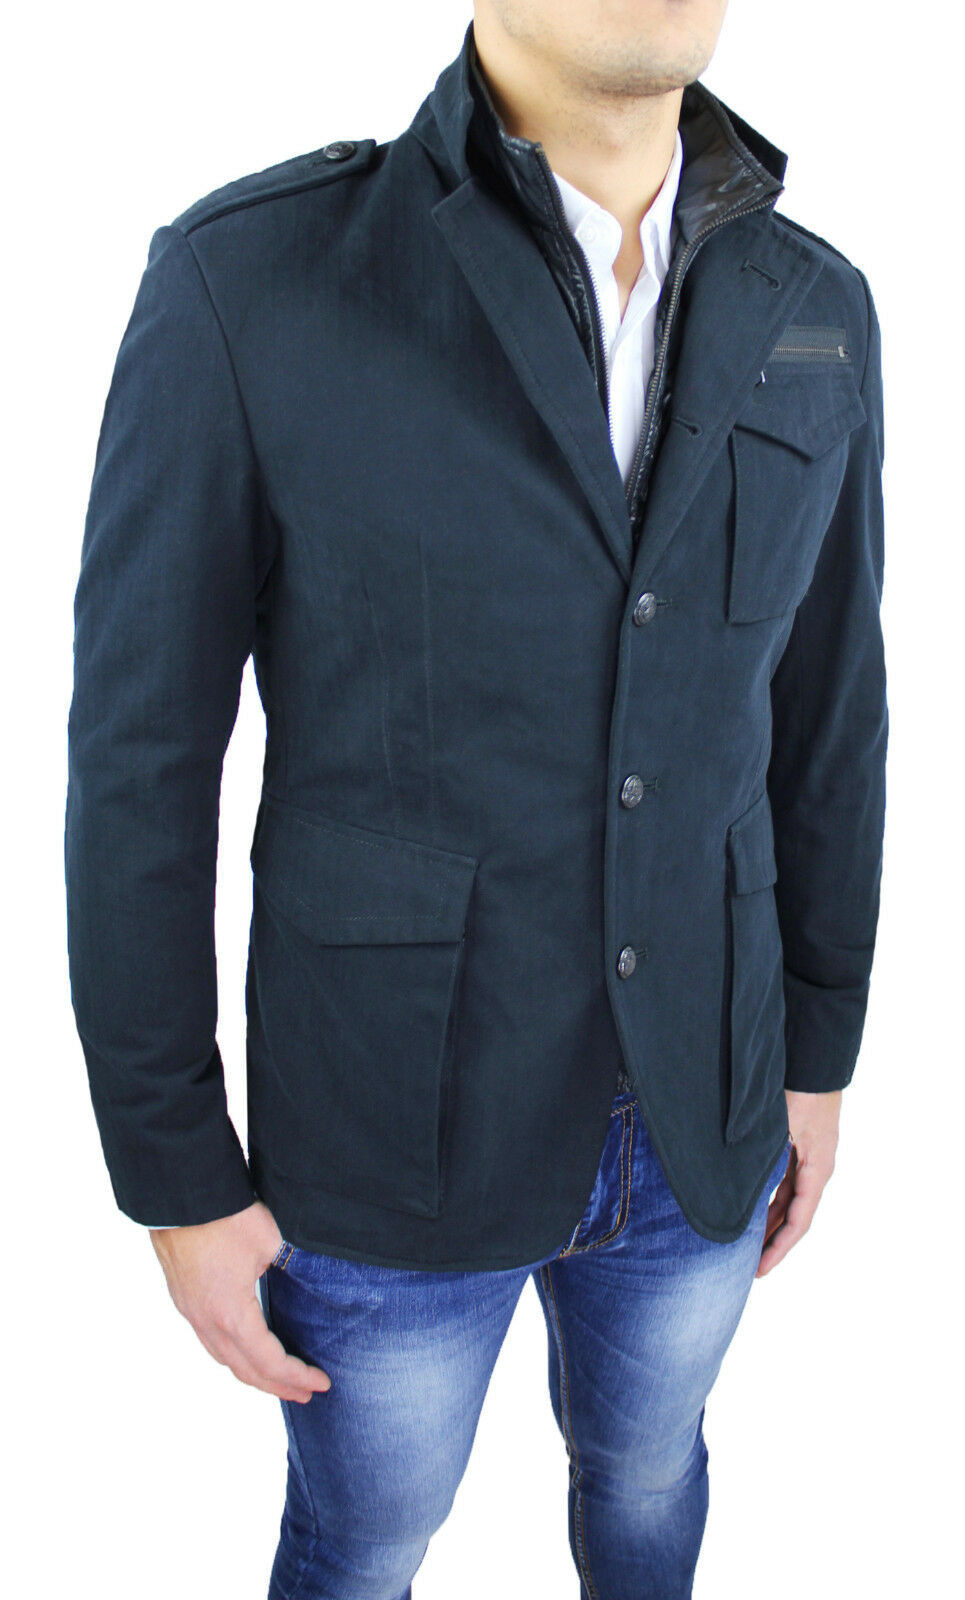 Coat Man a.Gilles Sartorial Made in   Smart Casual Navy Tag M L XL  the newest brands outlet online